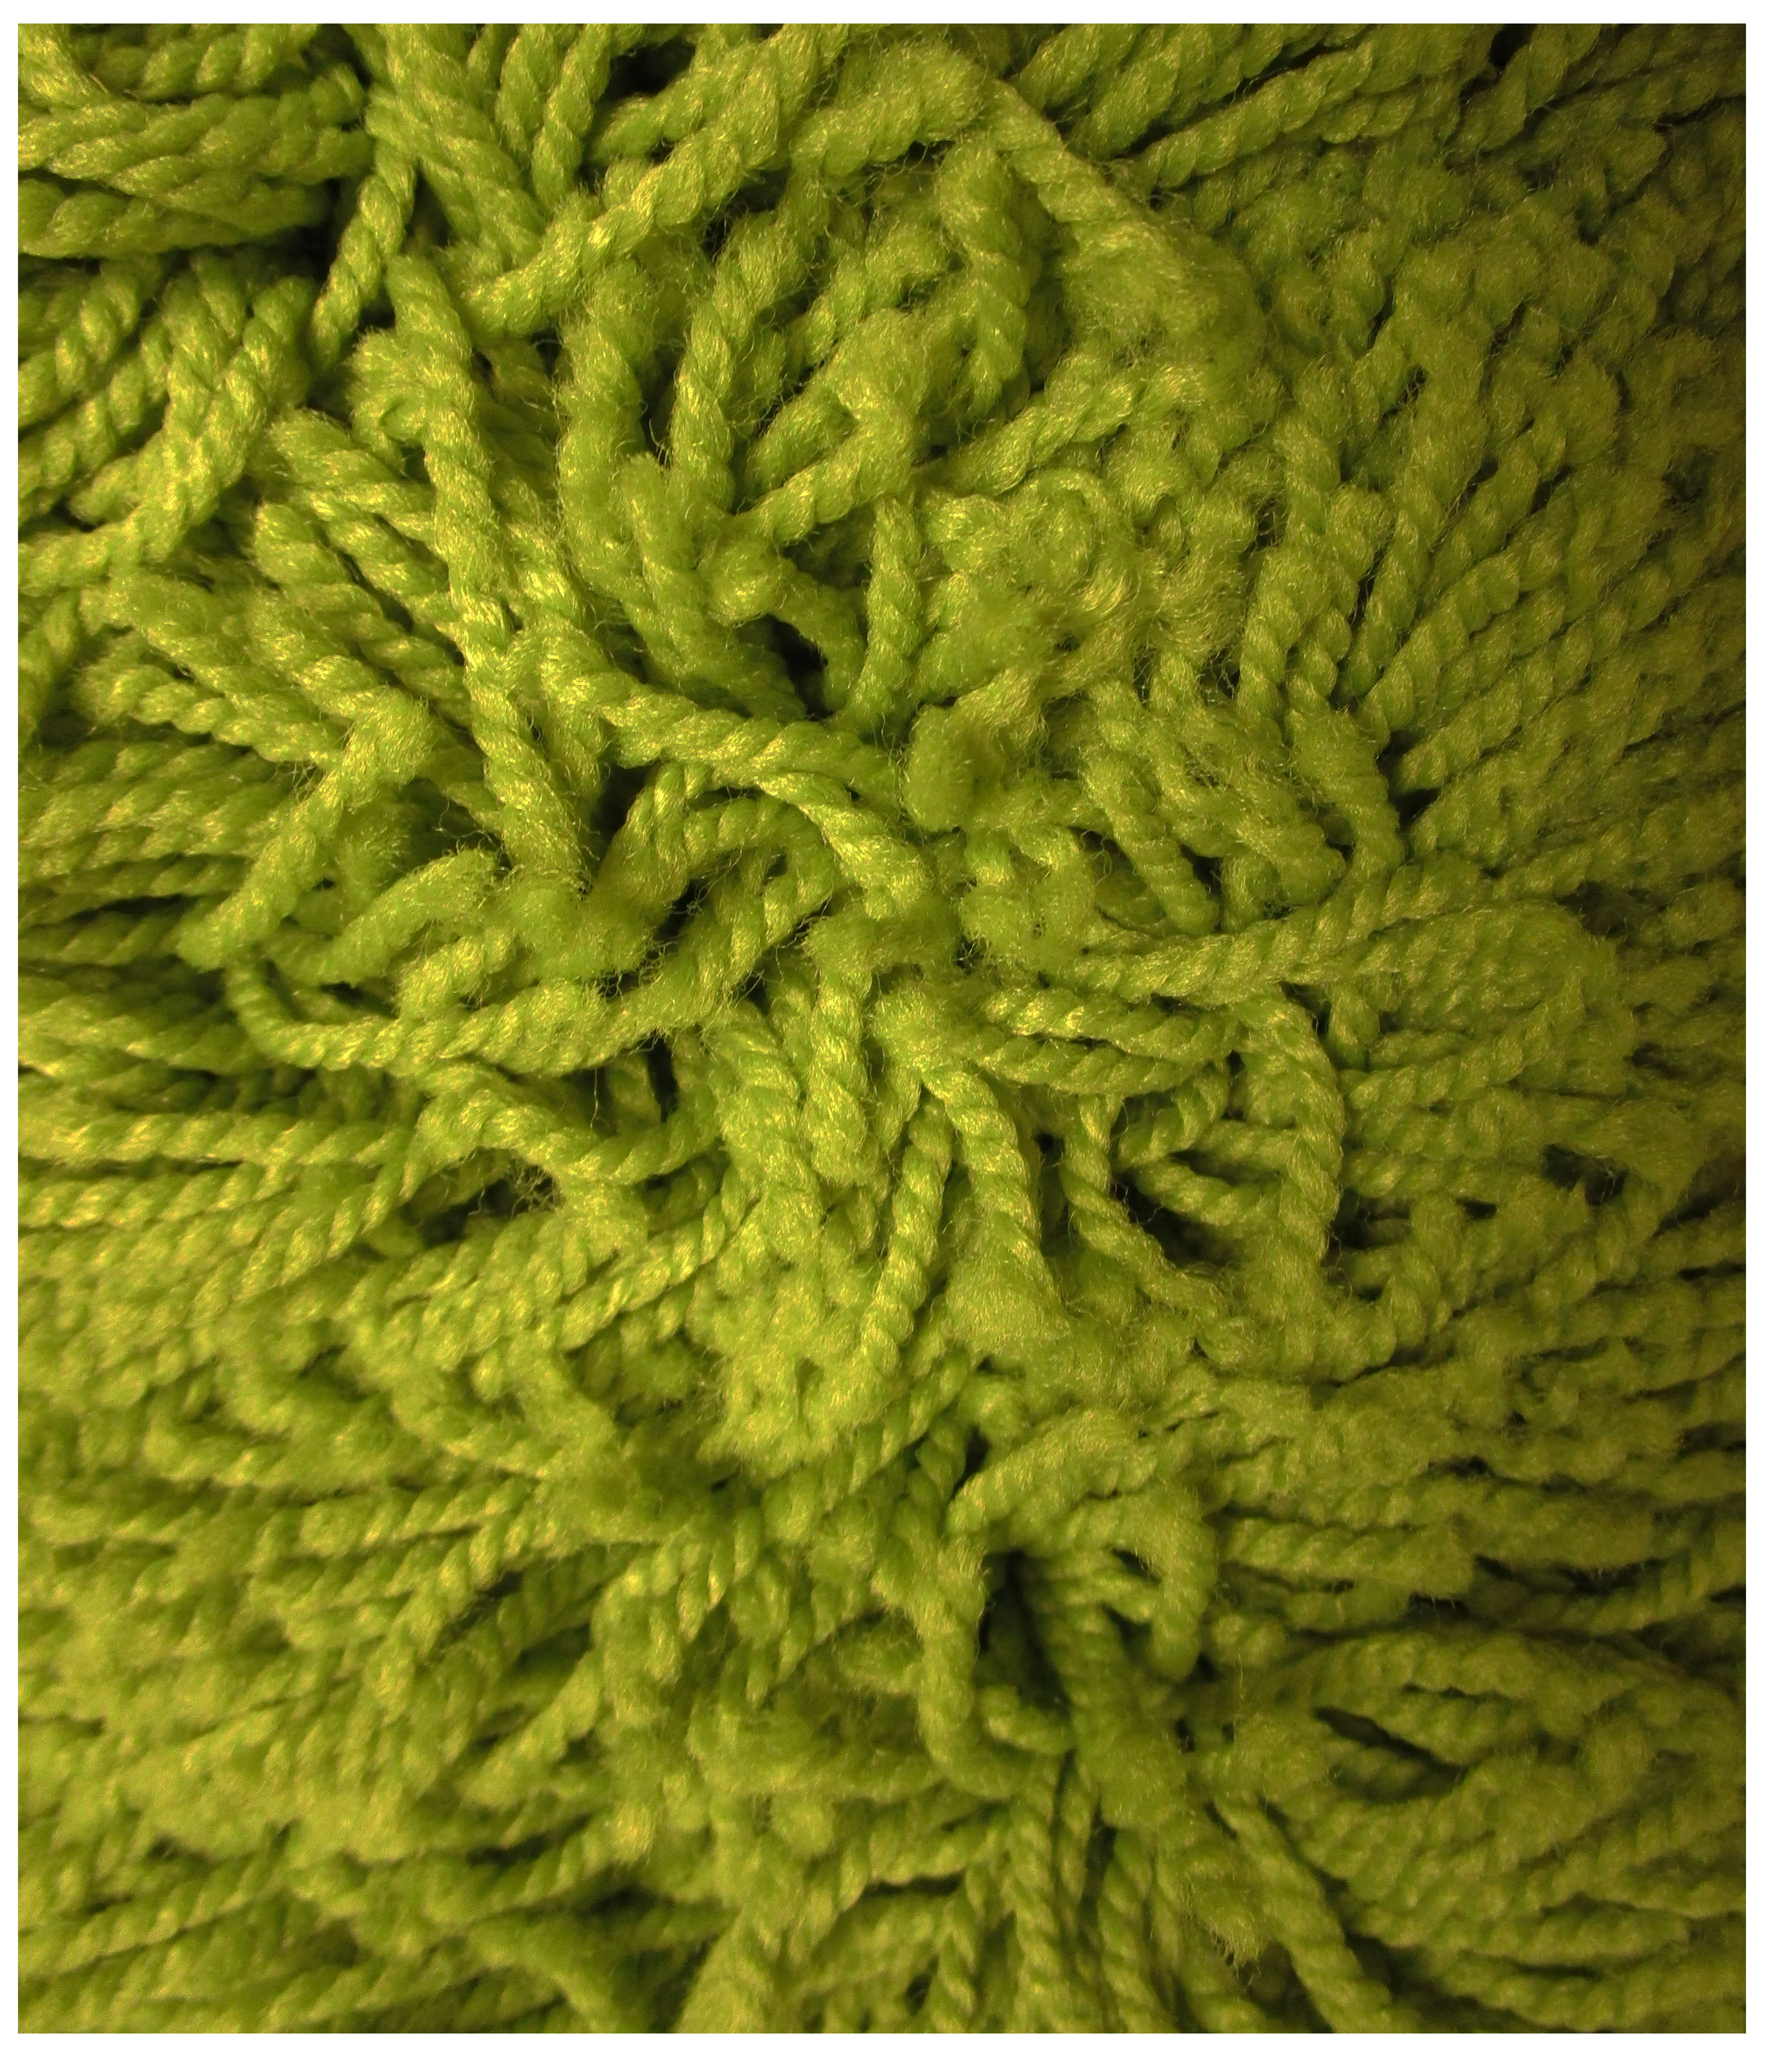 Asparagus Green Limited Stock